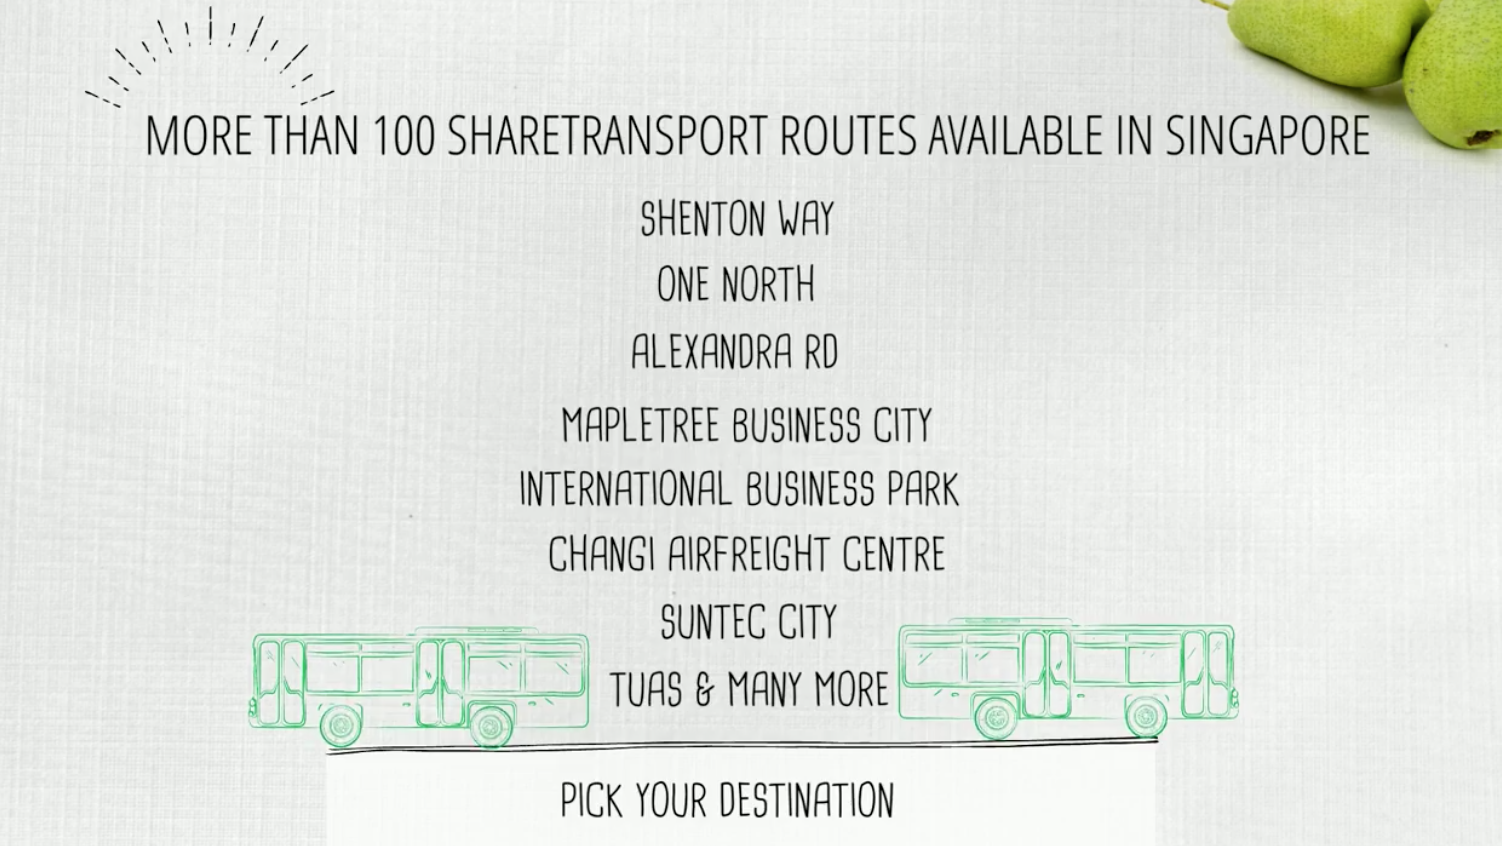 Get your free ticket away from an MRT OR Public Bus with ShareTransport | Why Not Deals 1 & Promotions